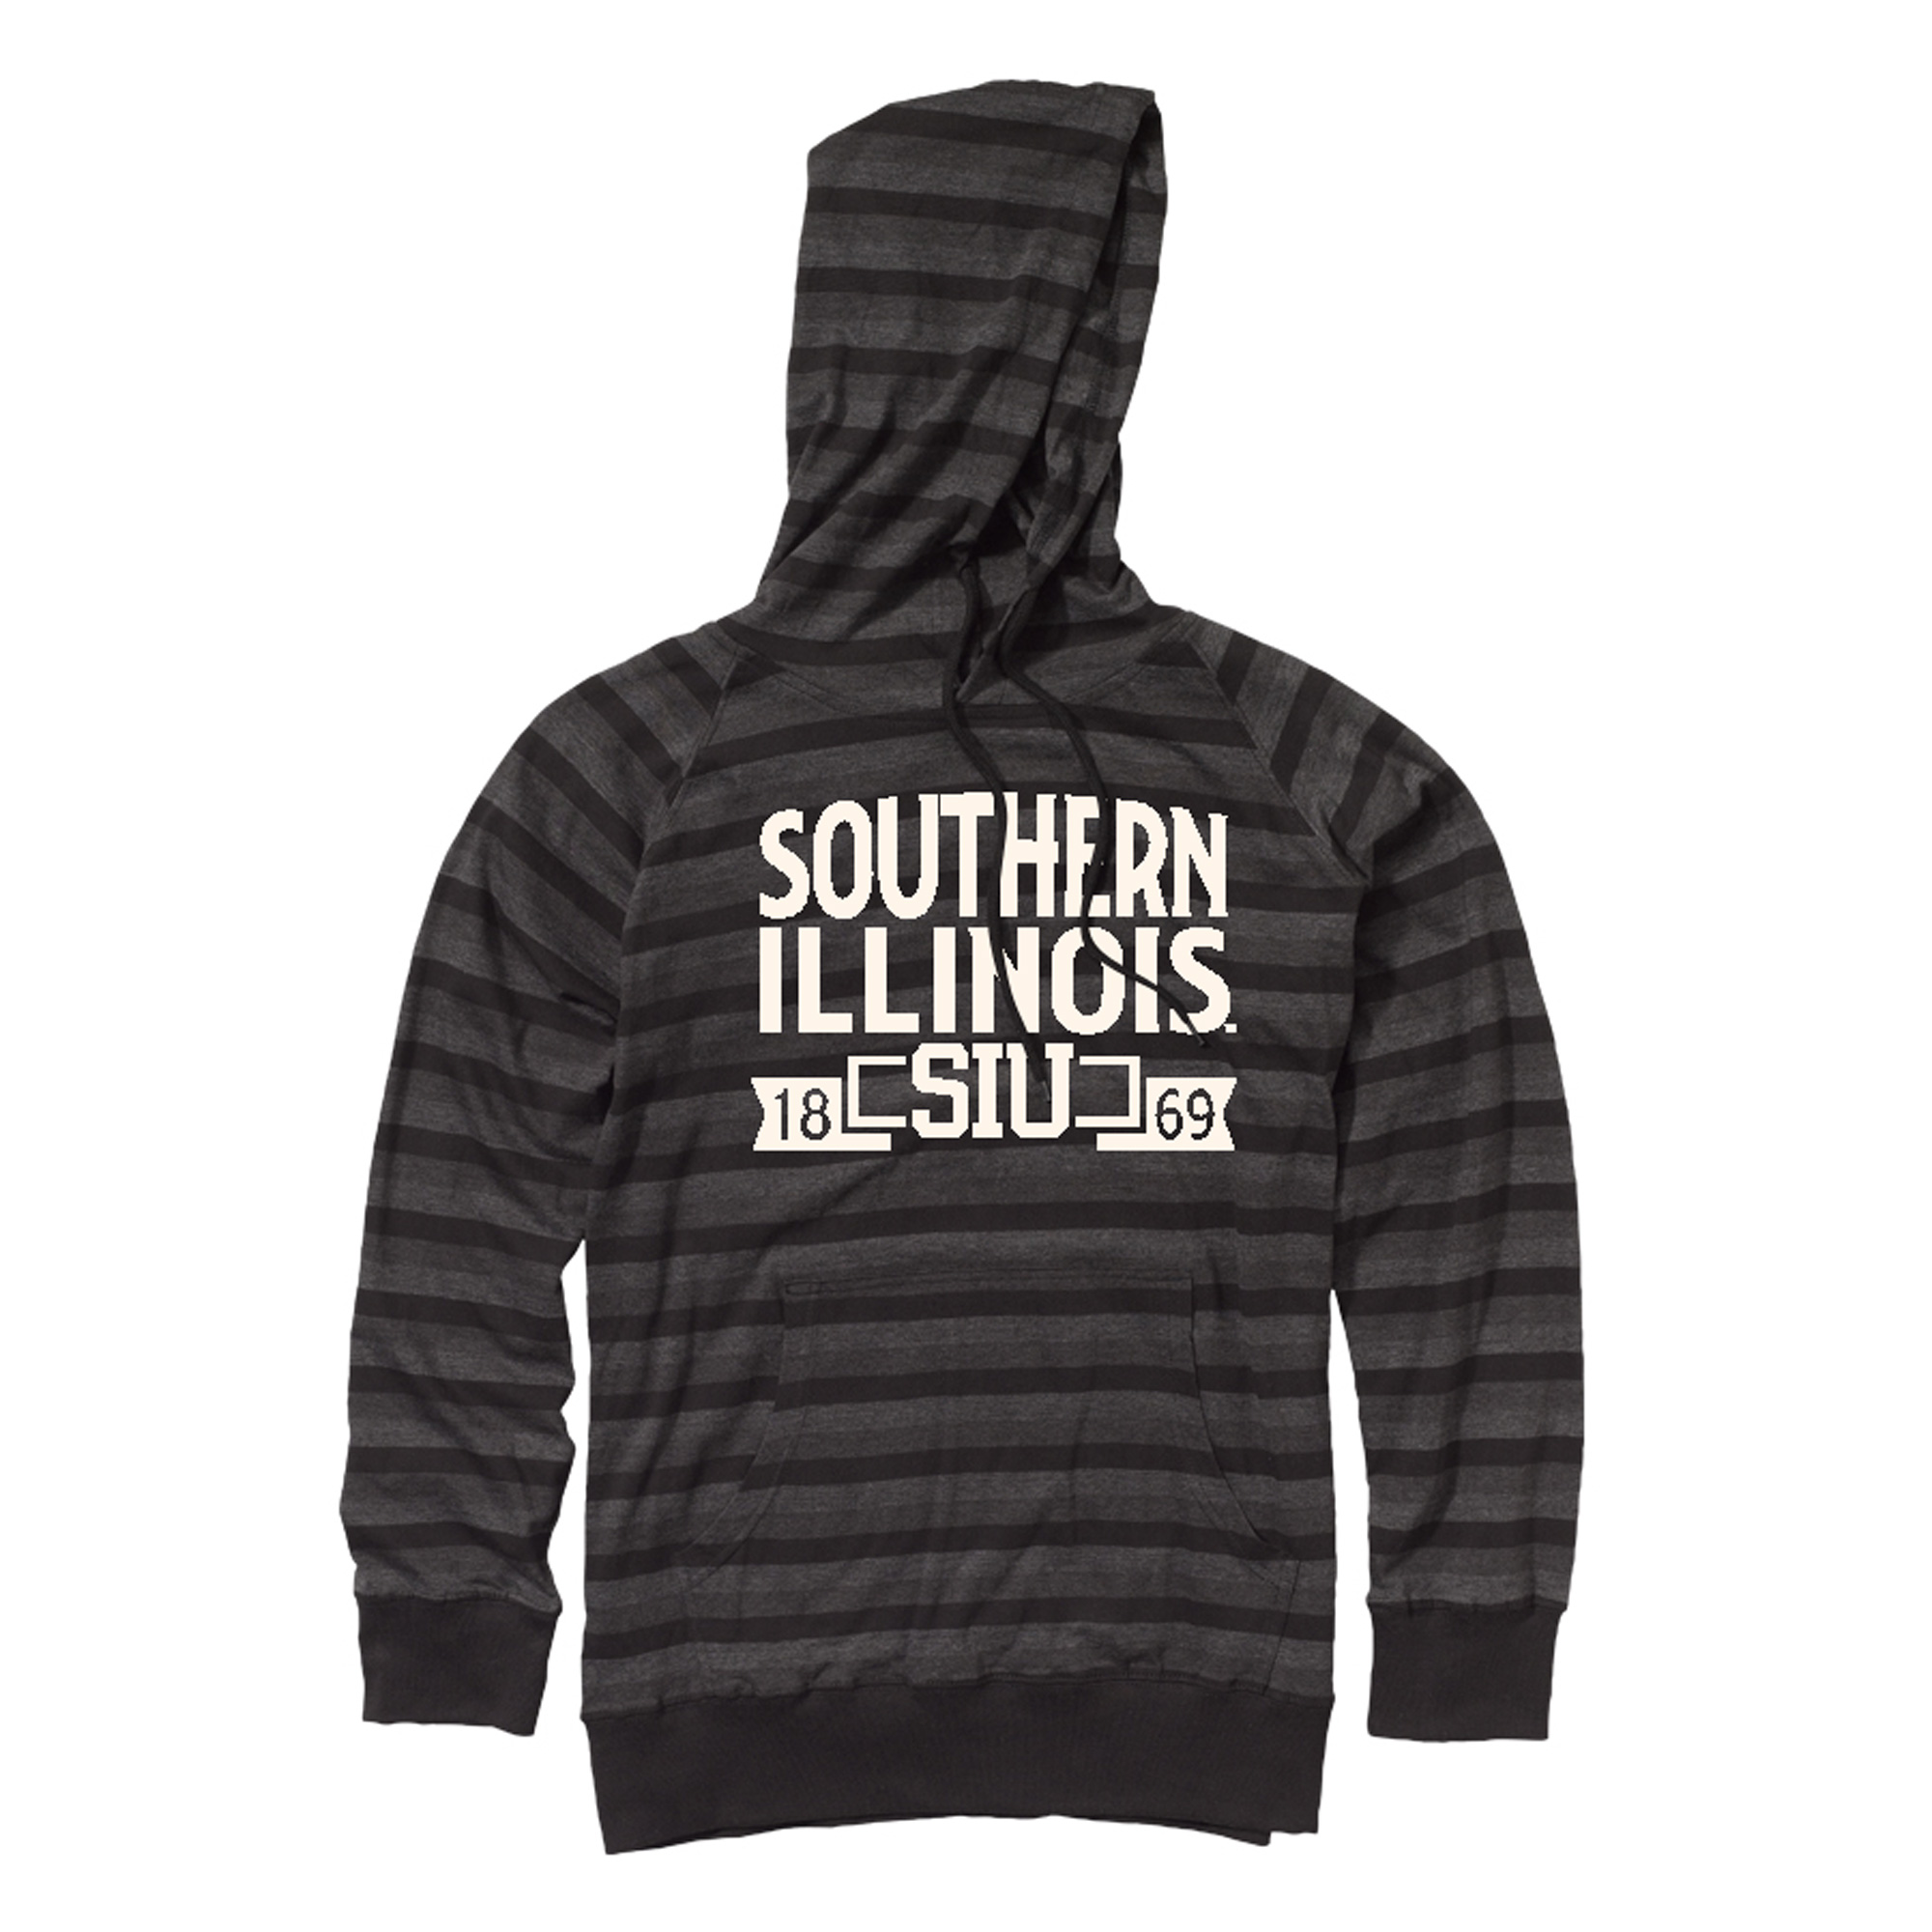 Image for the MV SPORT® SOUTHERN ILLINOIS JACKSON STRIPE PULLOVER product